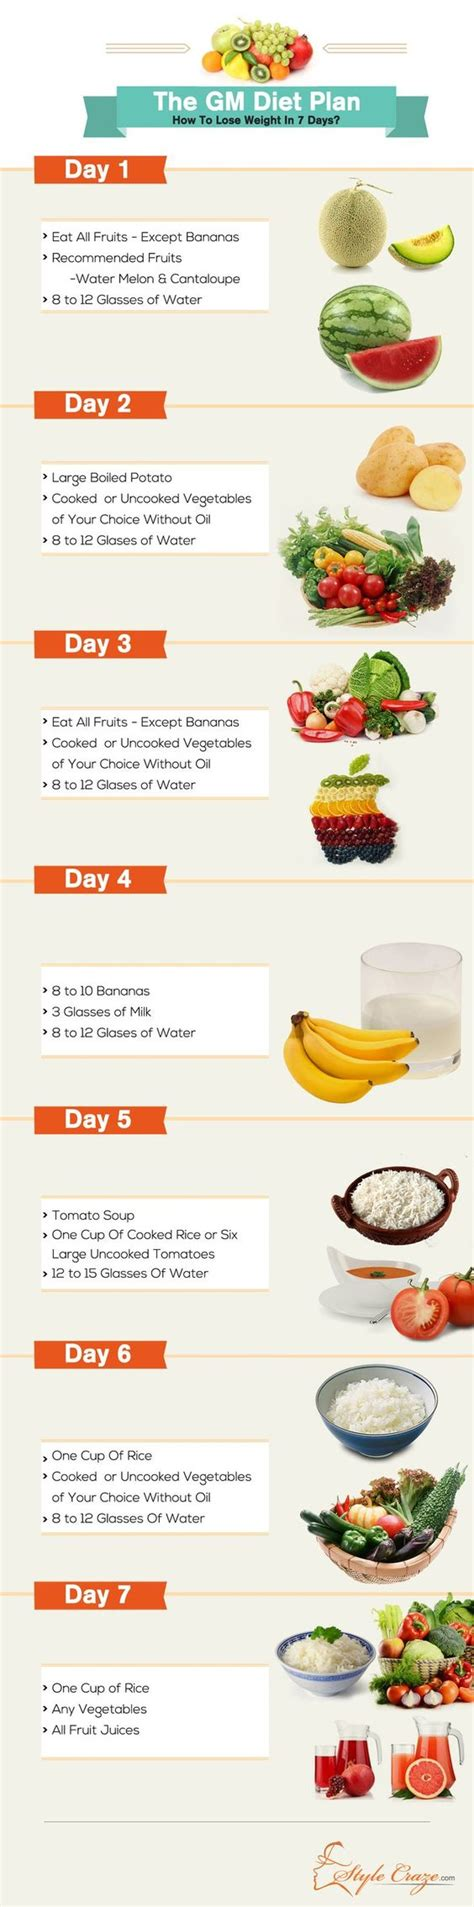 1 Week Detox Cleanse Diet Plan by The Gm Diet Plan How To Lose Weight In Just 7 Days To